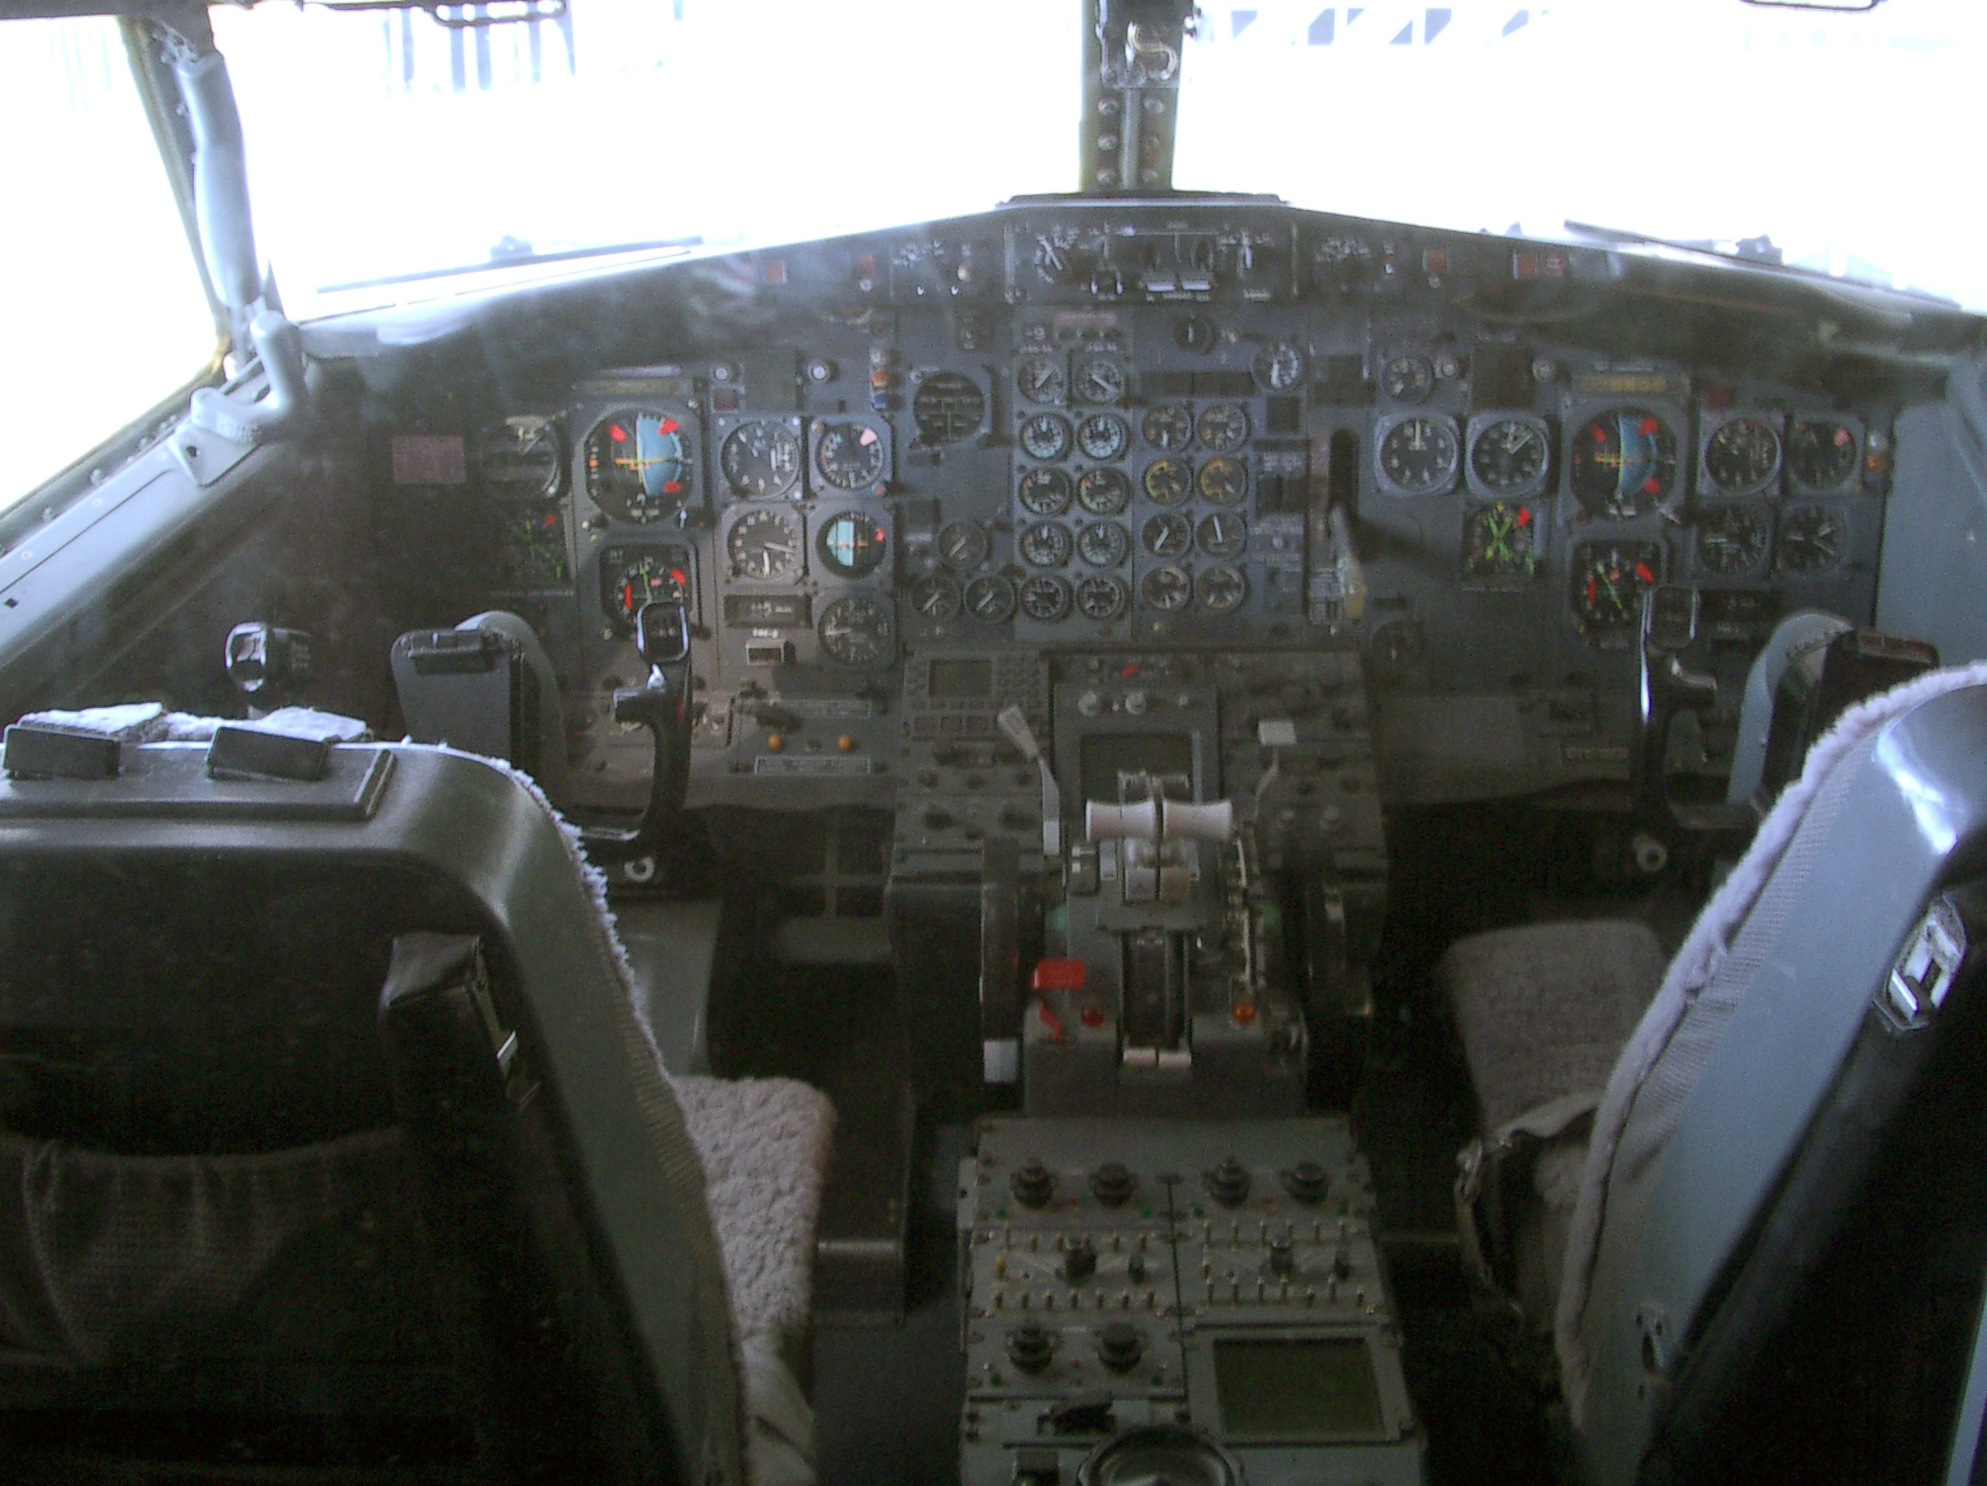 Boeing 737-200 medium jetliner